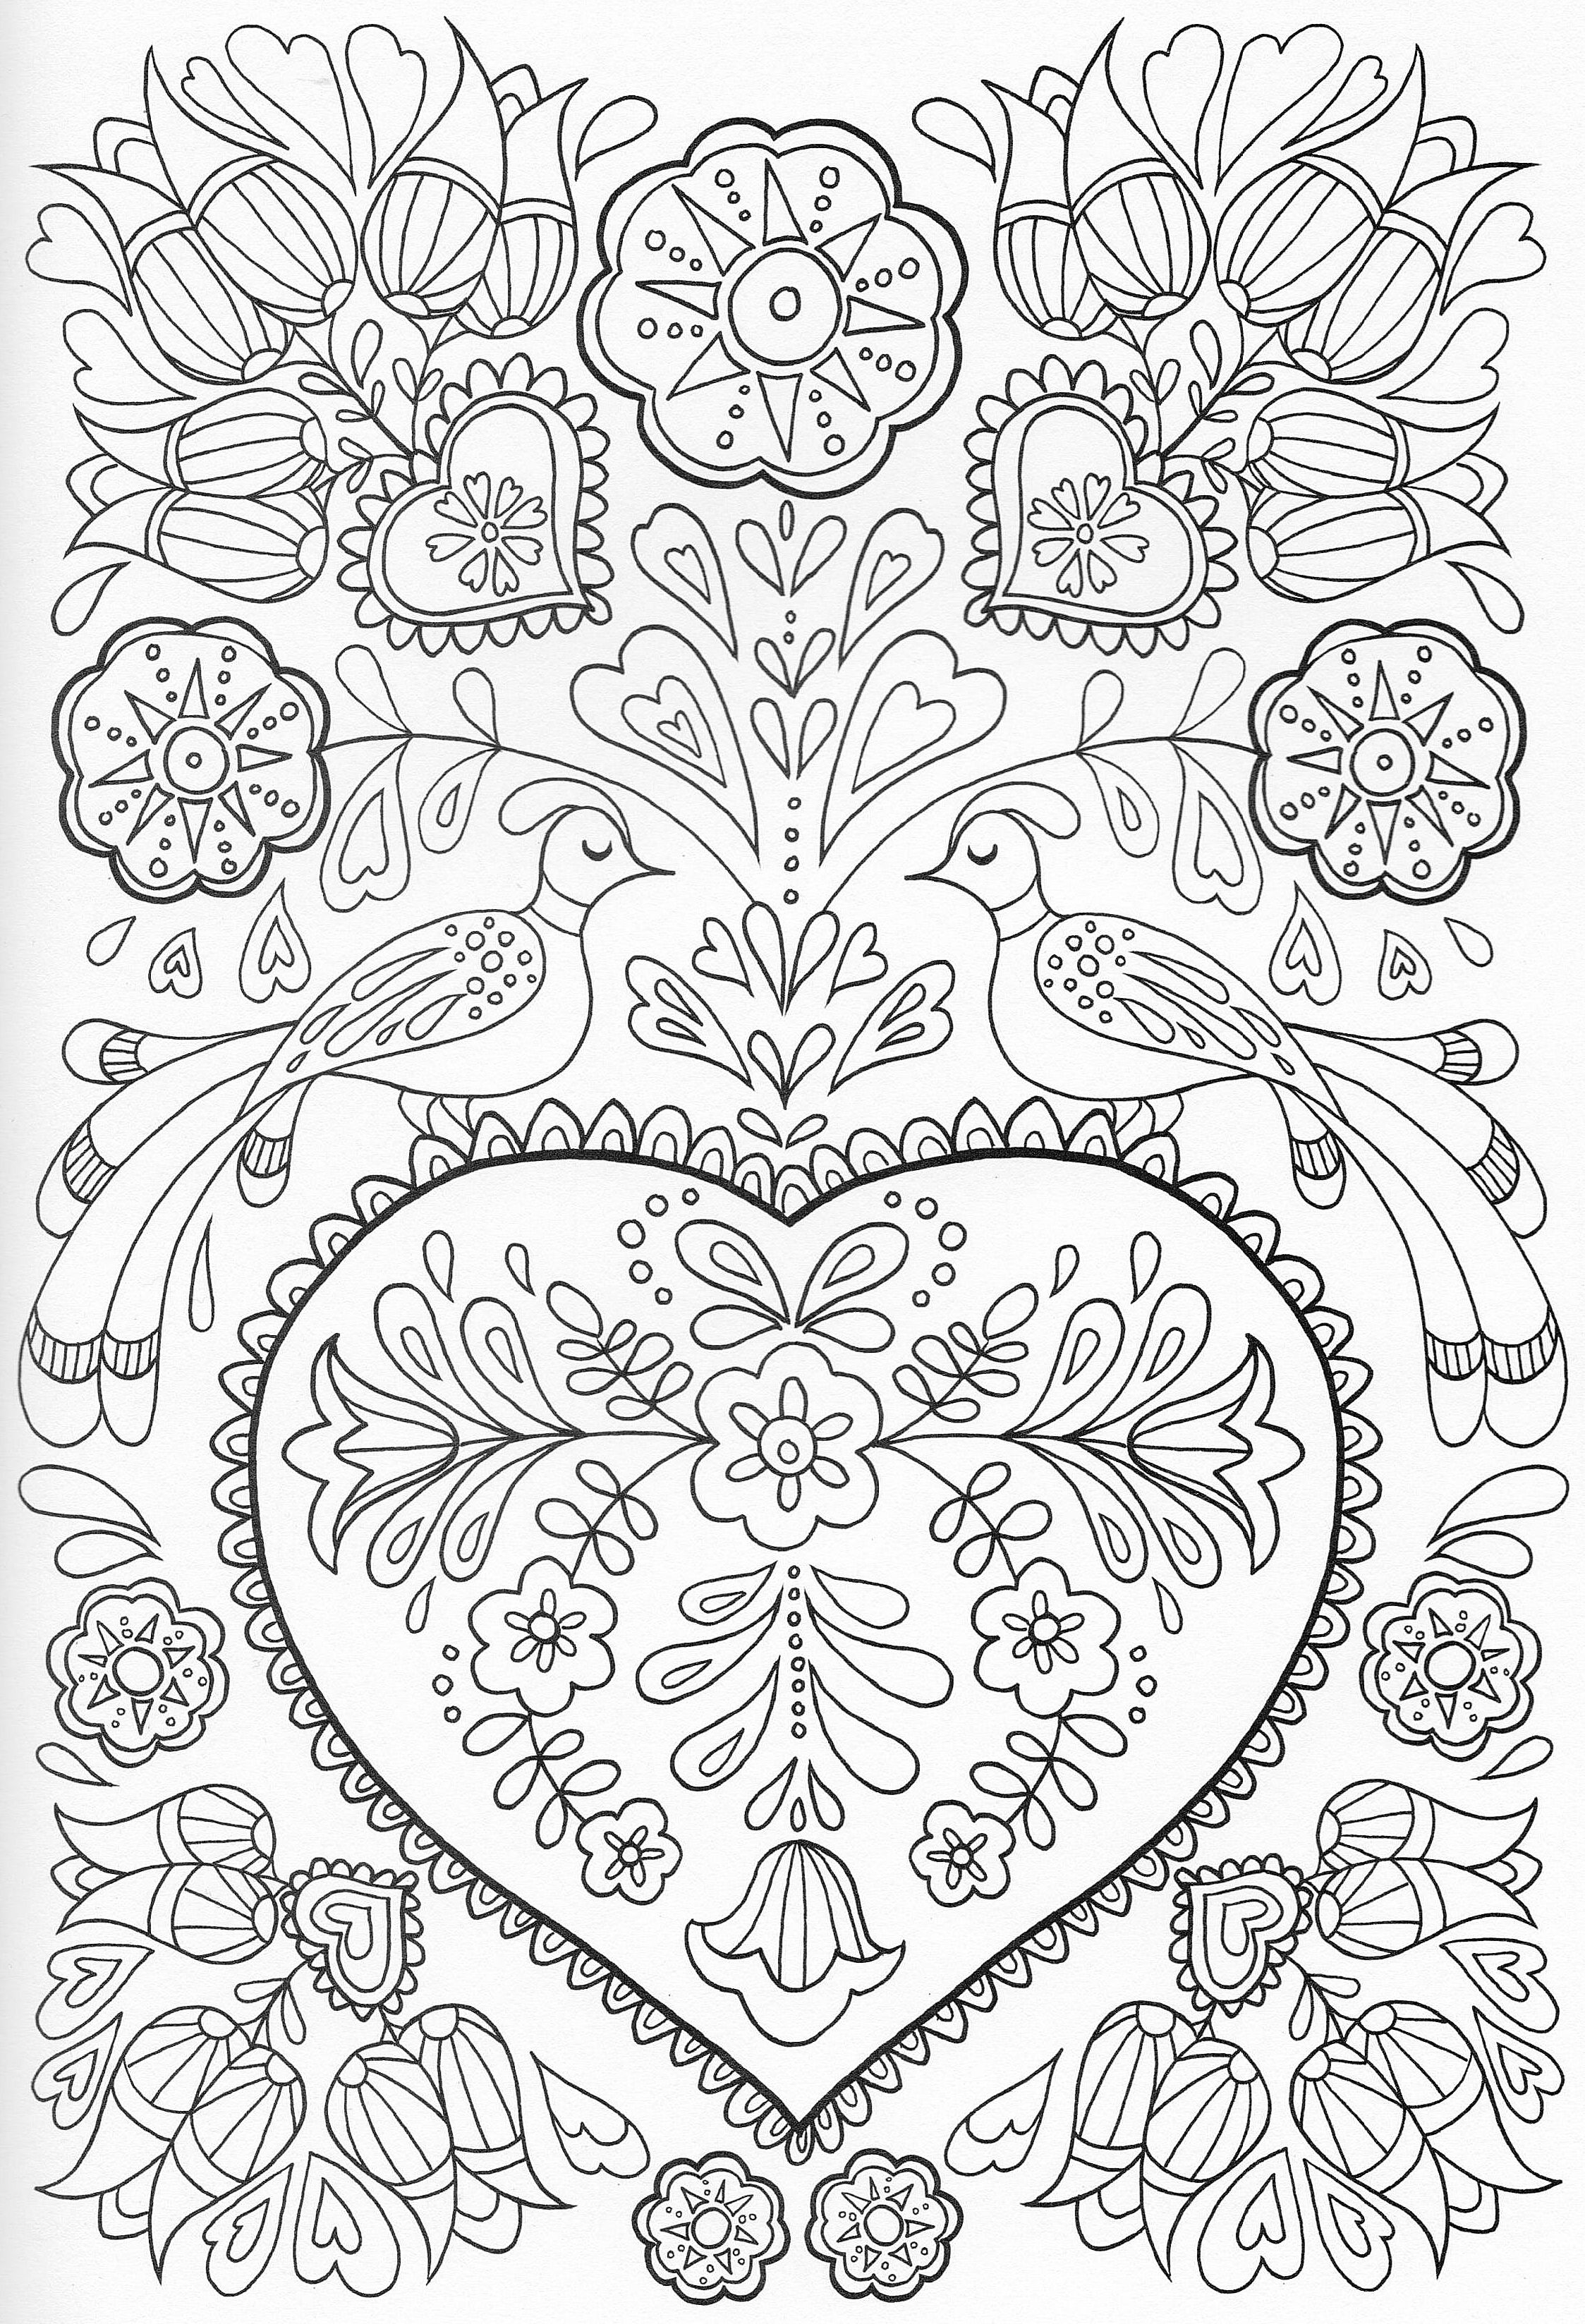 scandinavian coloring book pg 41 - Pattern Coloring Books